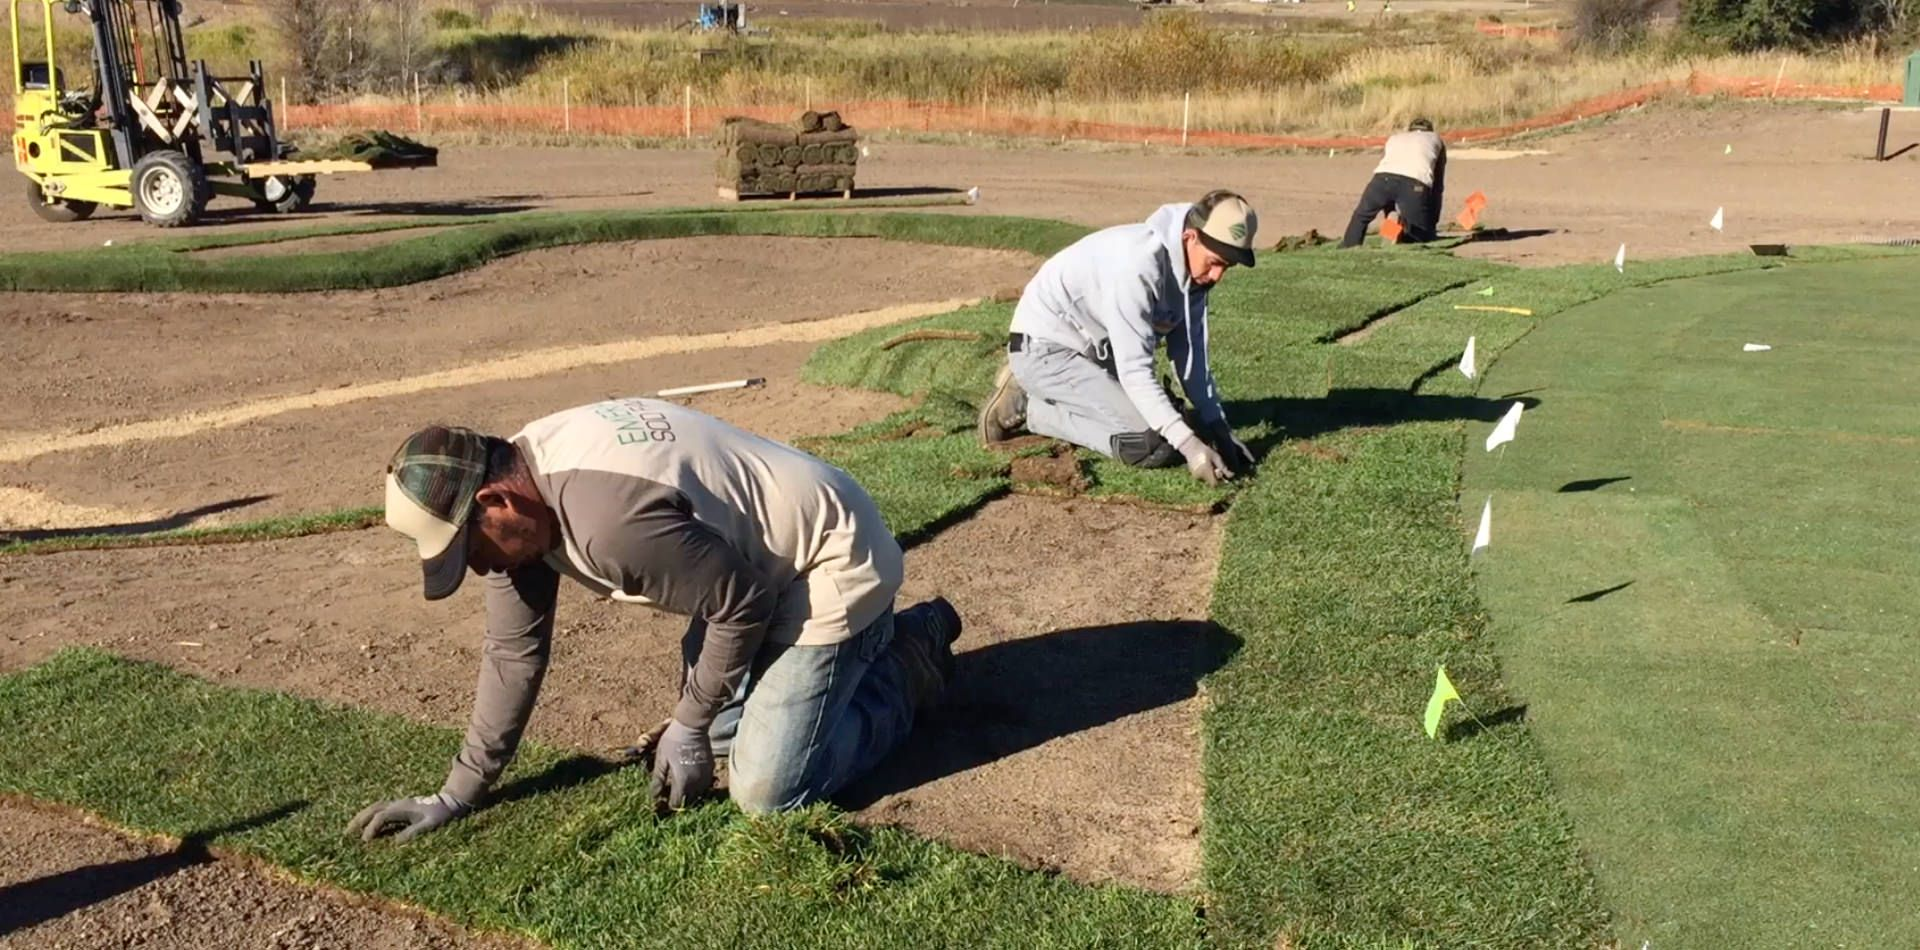 Exceptional Quality Sod Denver For Homes And Businesses Outstanding Quality Turf Grass Soddenver From Emerald Sod Farms Enables Denver B Turf Grass Farm Sod